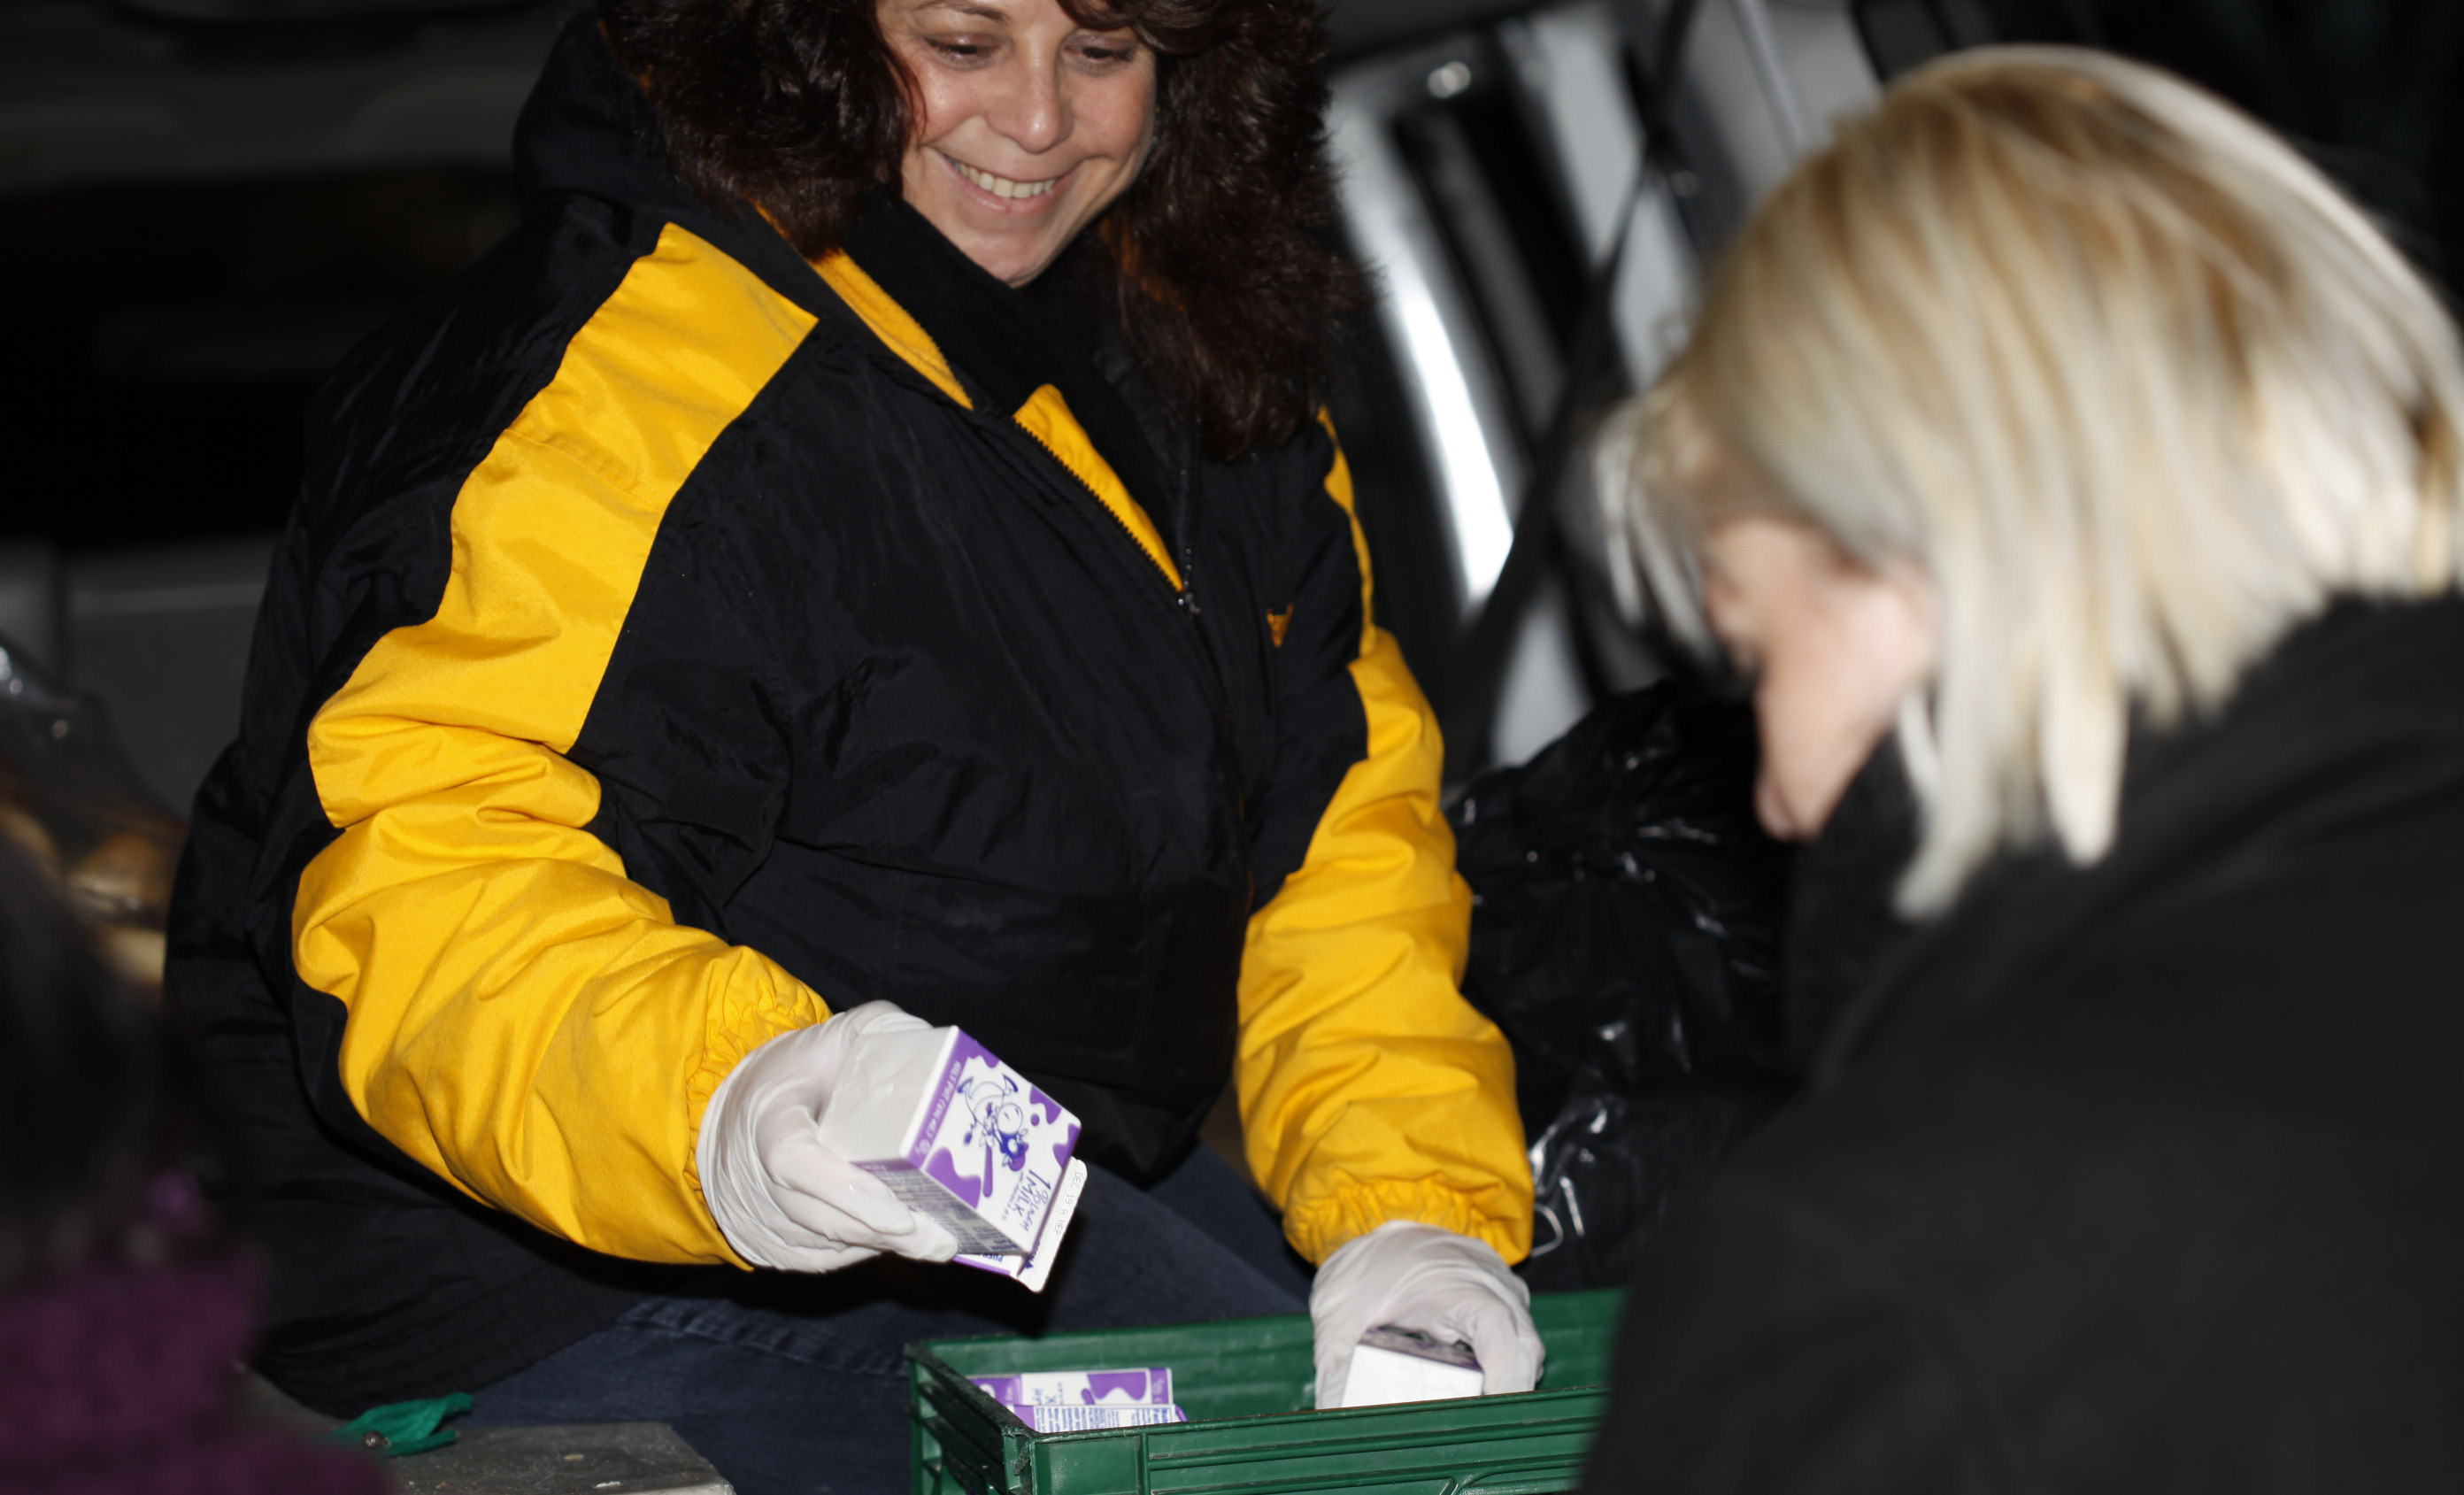 Smiling woman in black and yellow coat handing out small cartons of milk